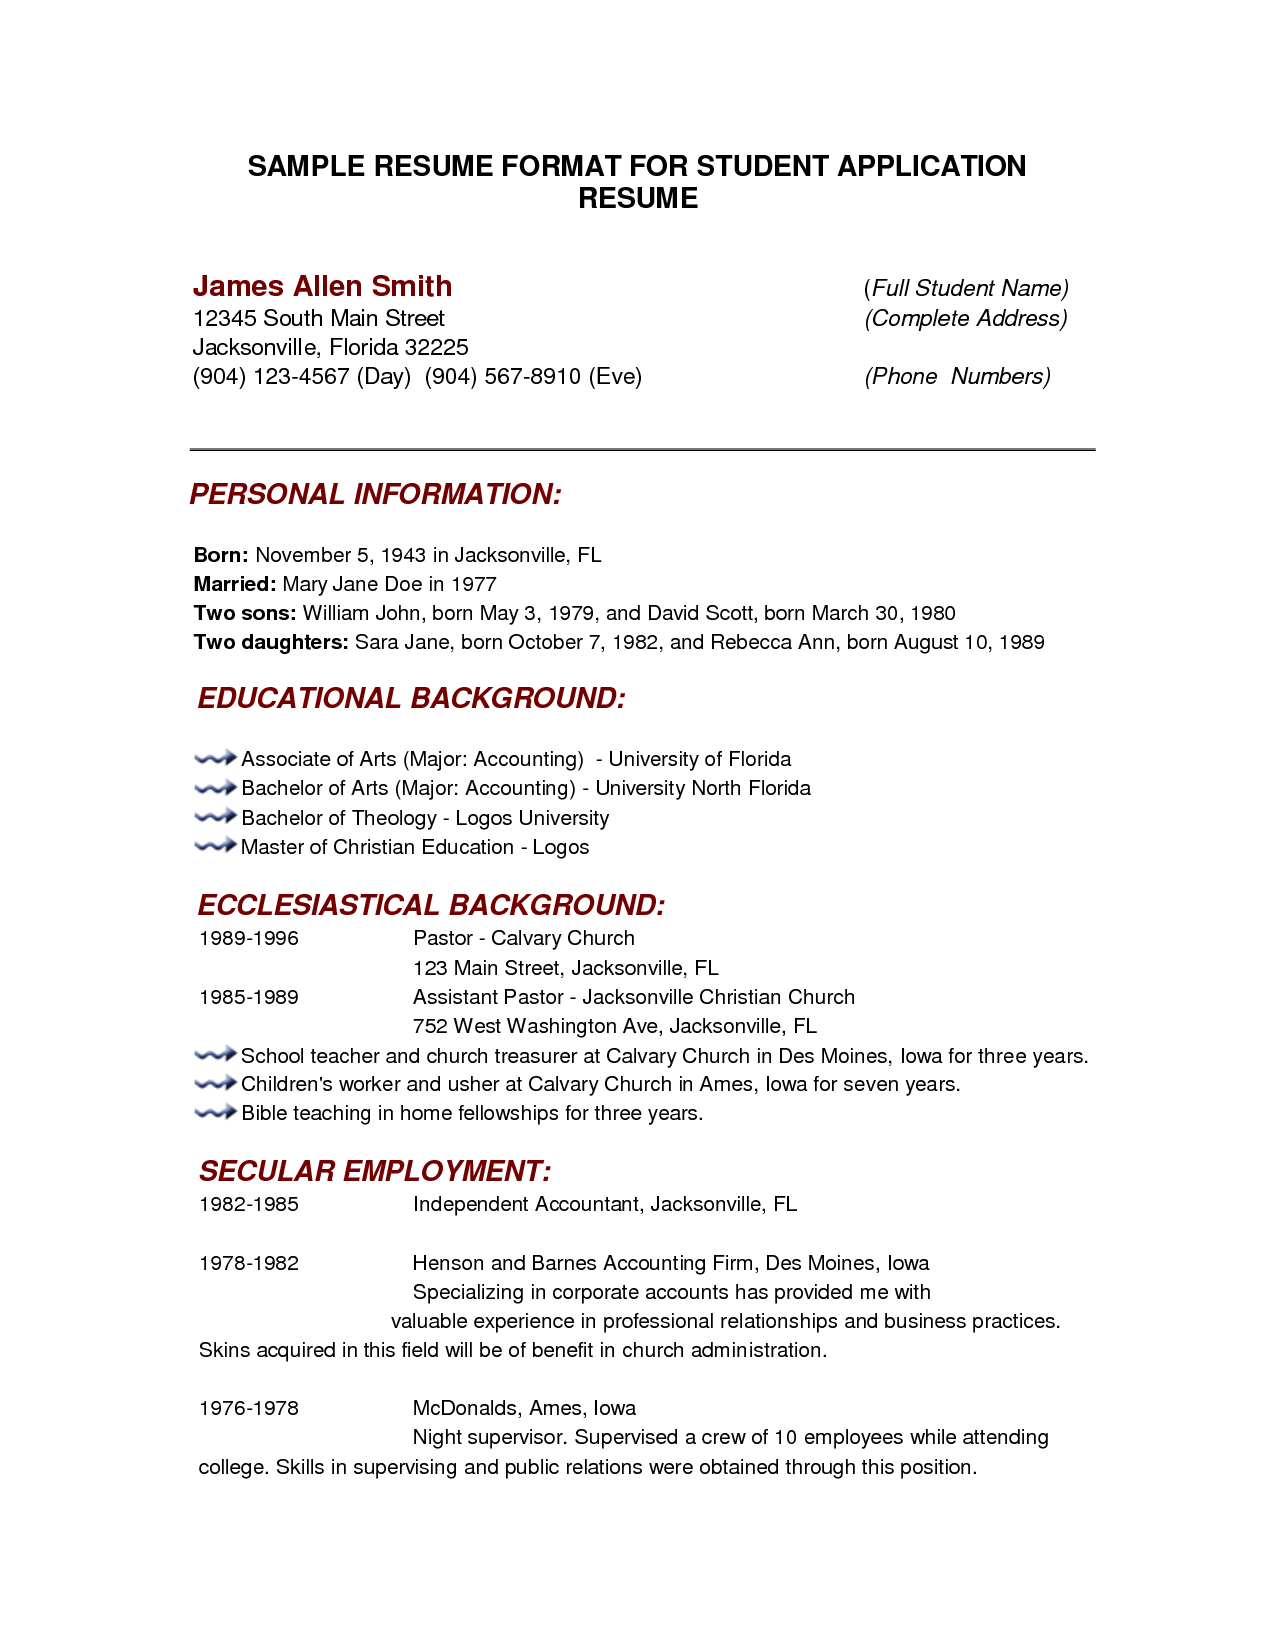 doorman resume sample theatre senior technical recruiter templates curriculum vitae engineering best free home design idea inspiration - Best Curriculum Vitae Ever